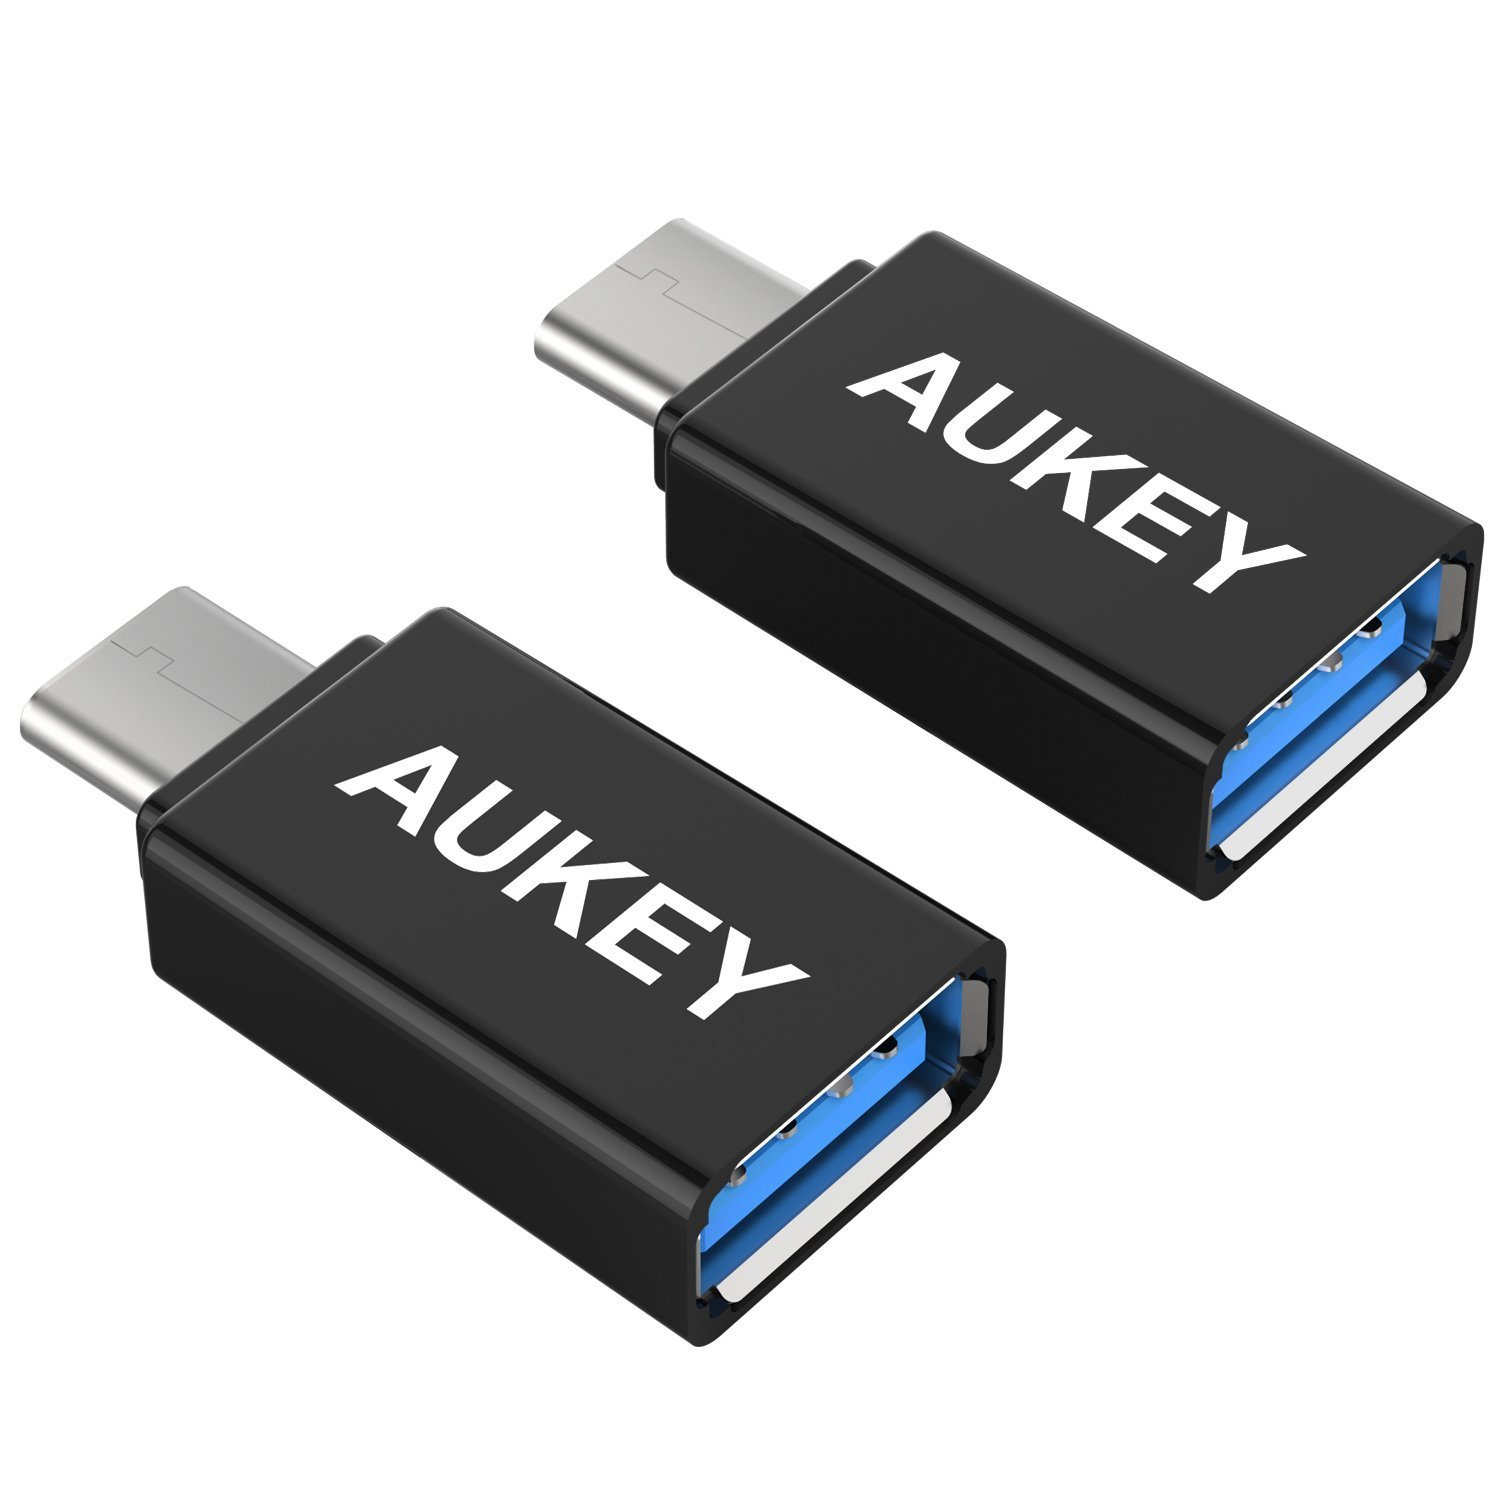 2 in 1 pack anker usb c to micro usb adapter converts usb type c aukey usb c to usb 3 0 adapter 2 pack for macbook google